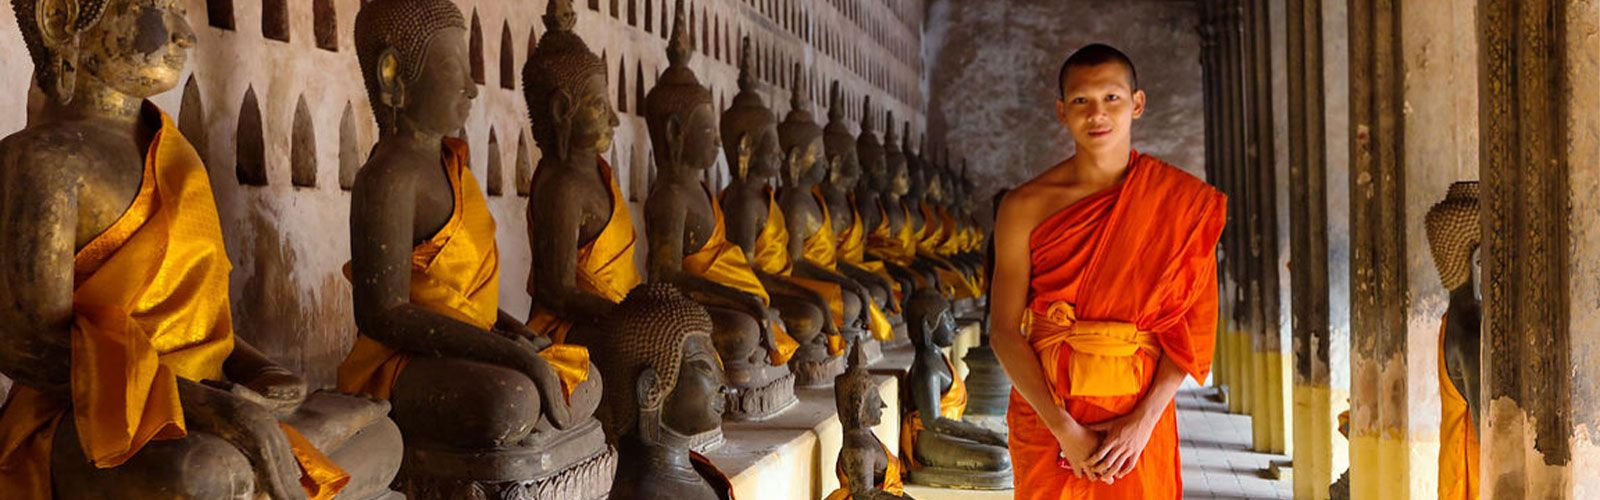 Vientiane Travel Guide | Asianventure Tours